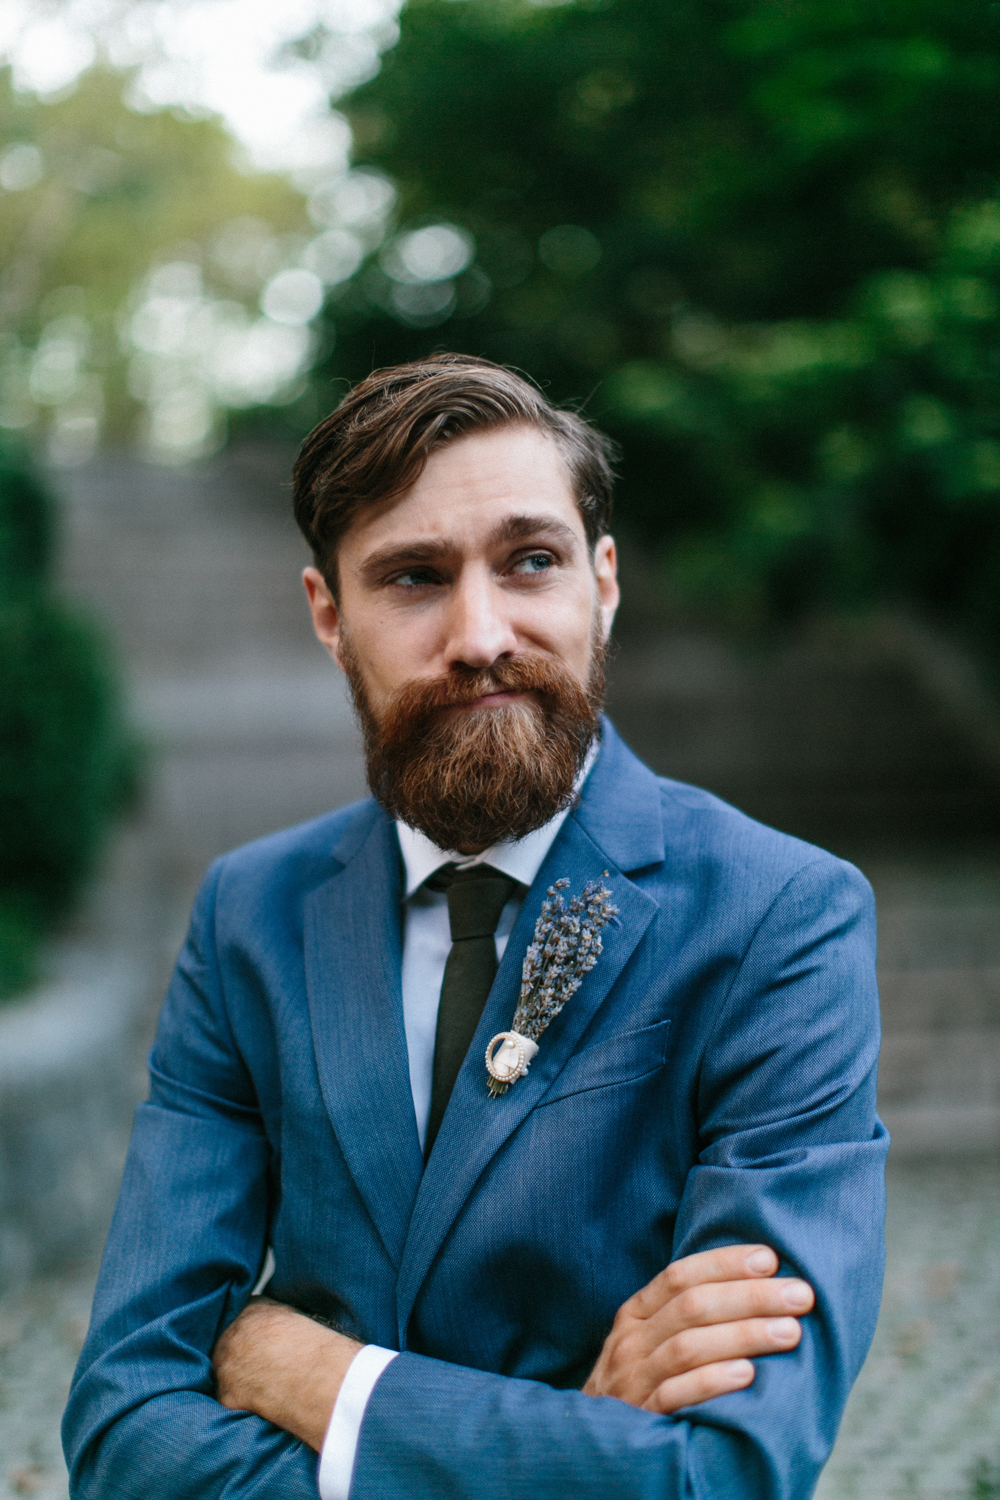 Groom portrait NYC